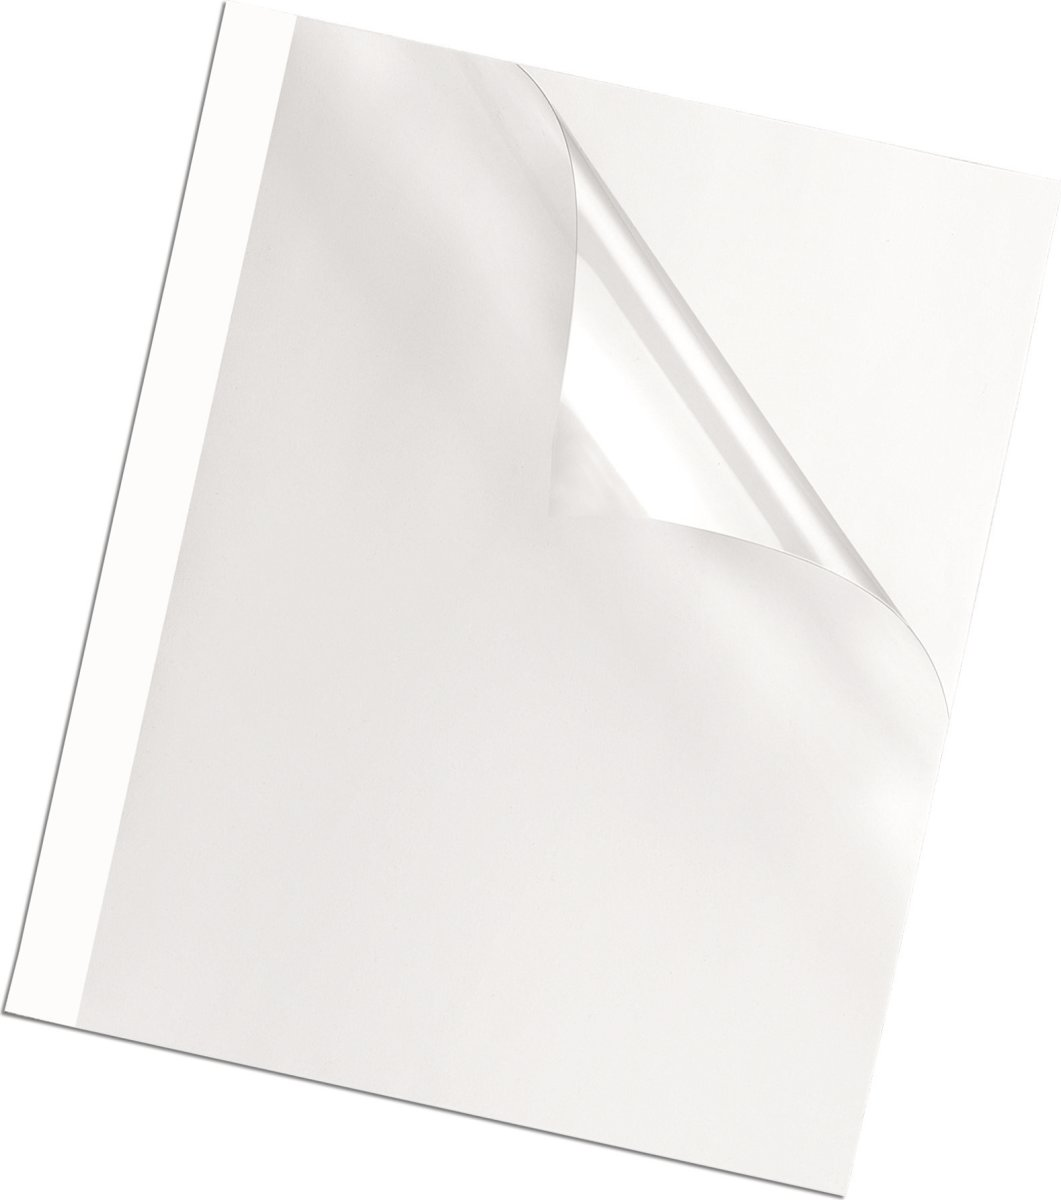 Fellowes standard thermal binding cover 3 mm, hvid